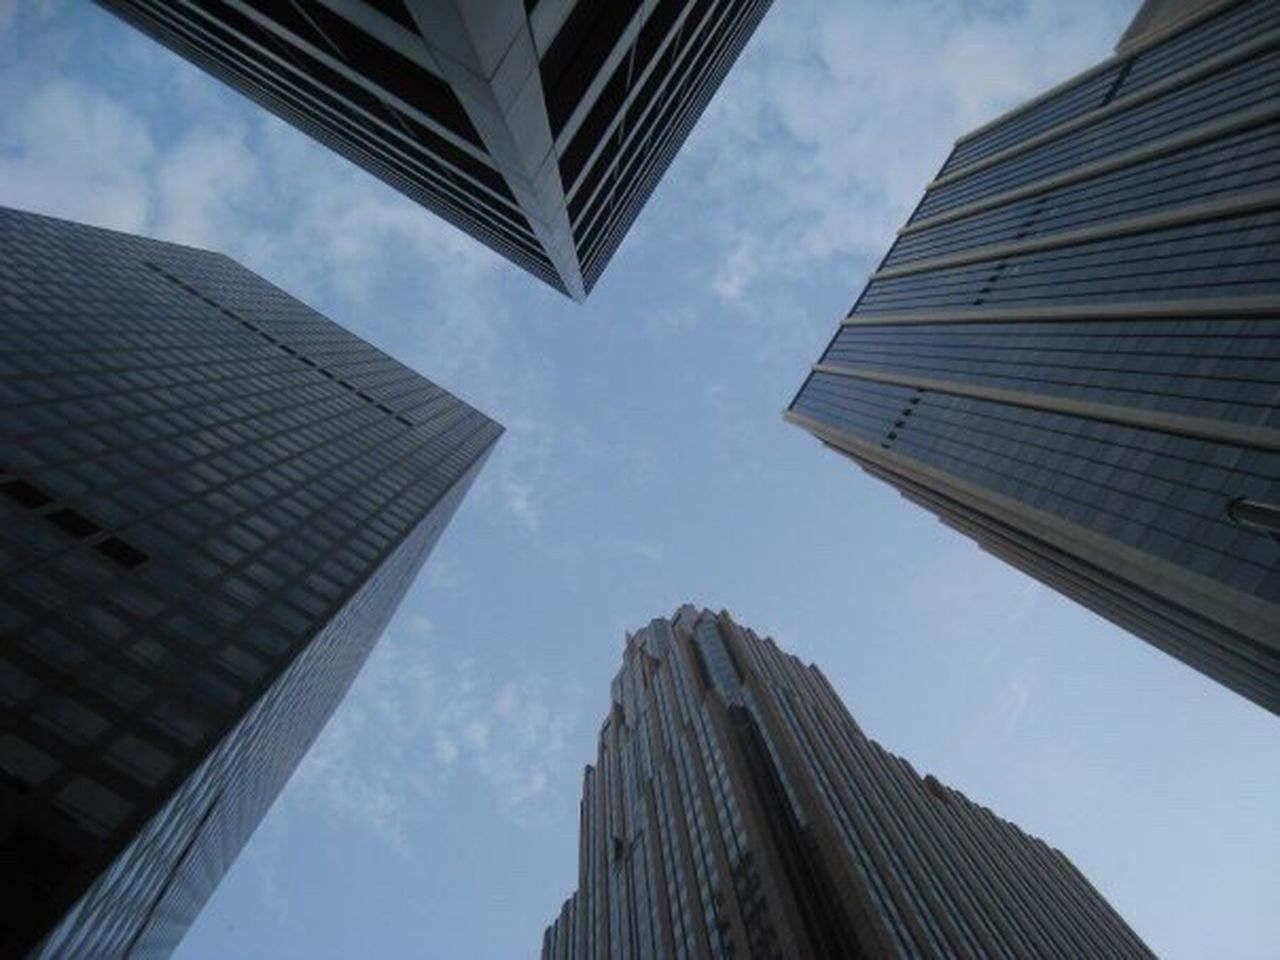 sky, low angle view, skyscraper, building exterior, tall - high, built structure, architecture, city, cloud - sky, directly below, office building exterior, outdoors, downtown district, modern, day, no people, corporate business, urban skyline, nature, office park, low